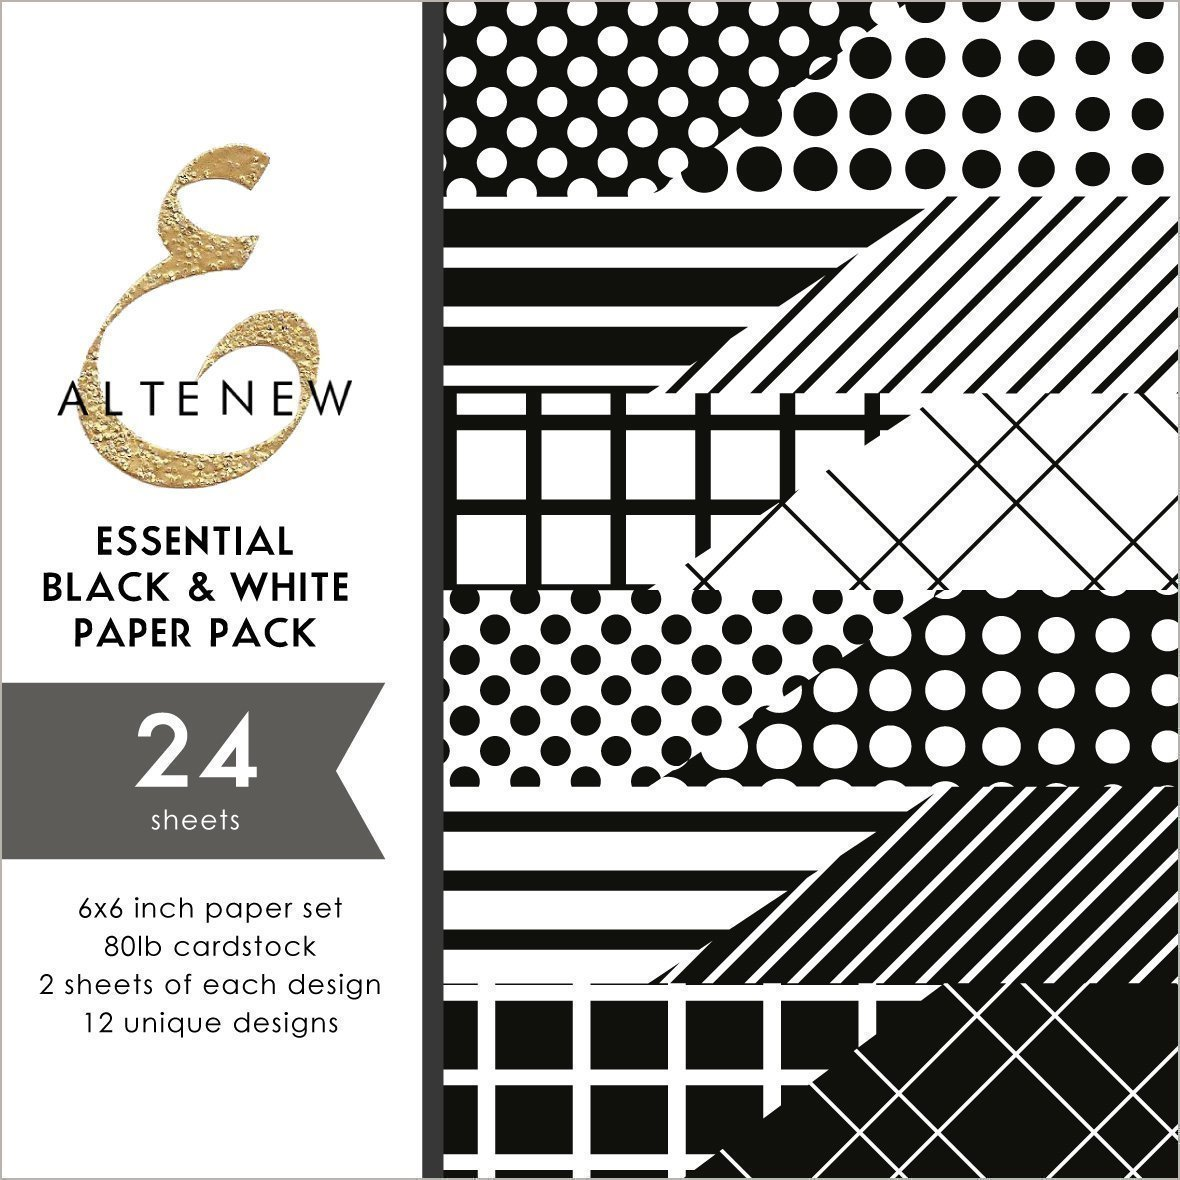 *NEW* - Altenew - Essential Black & White 6x6 Paper Pack